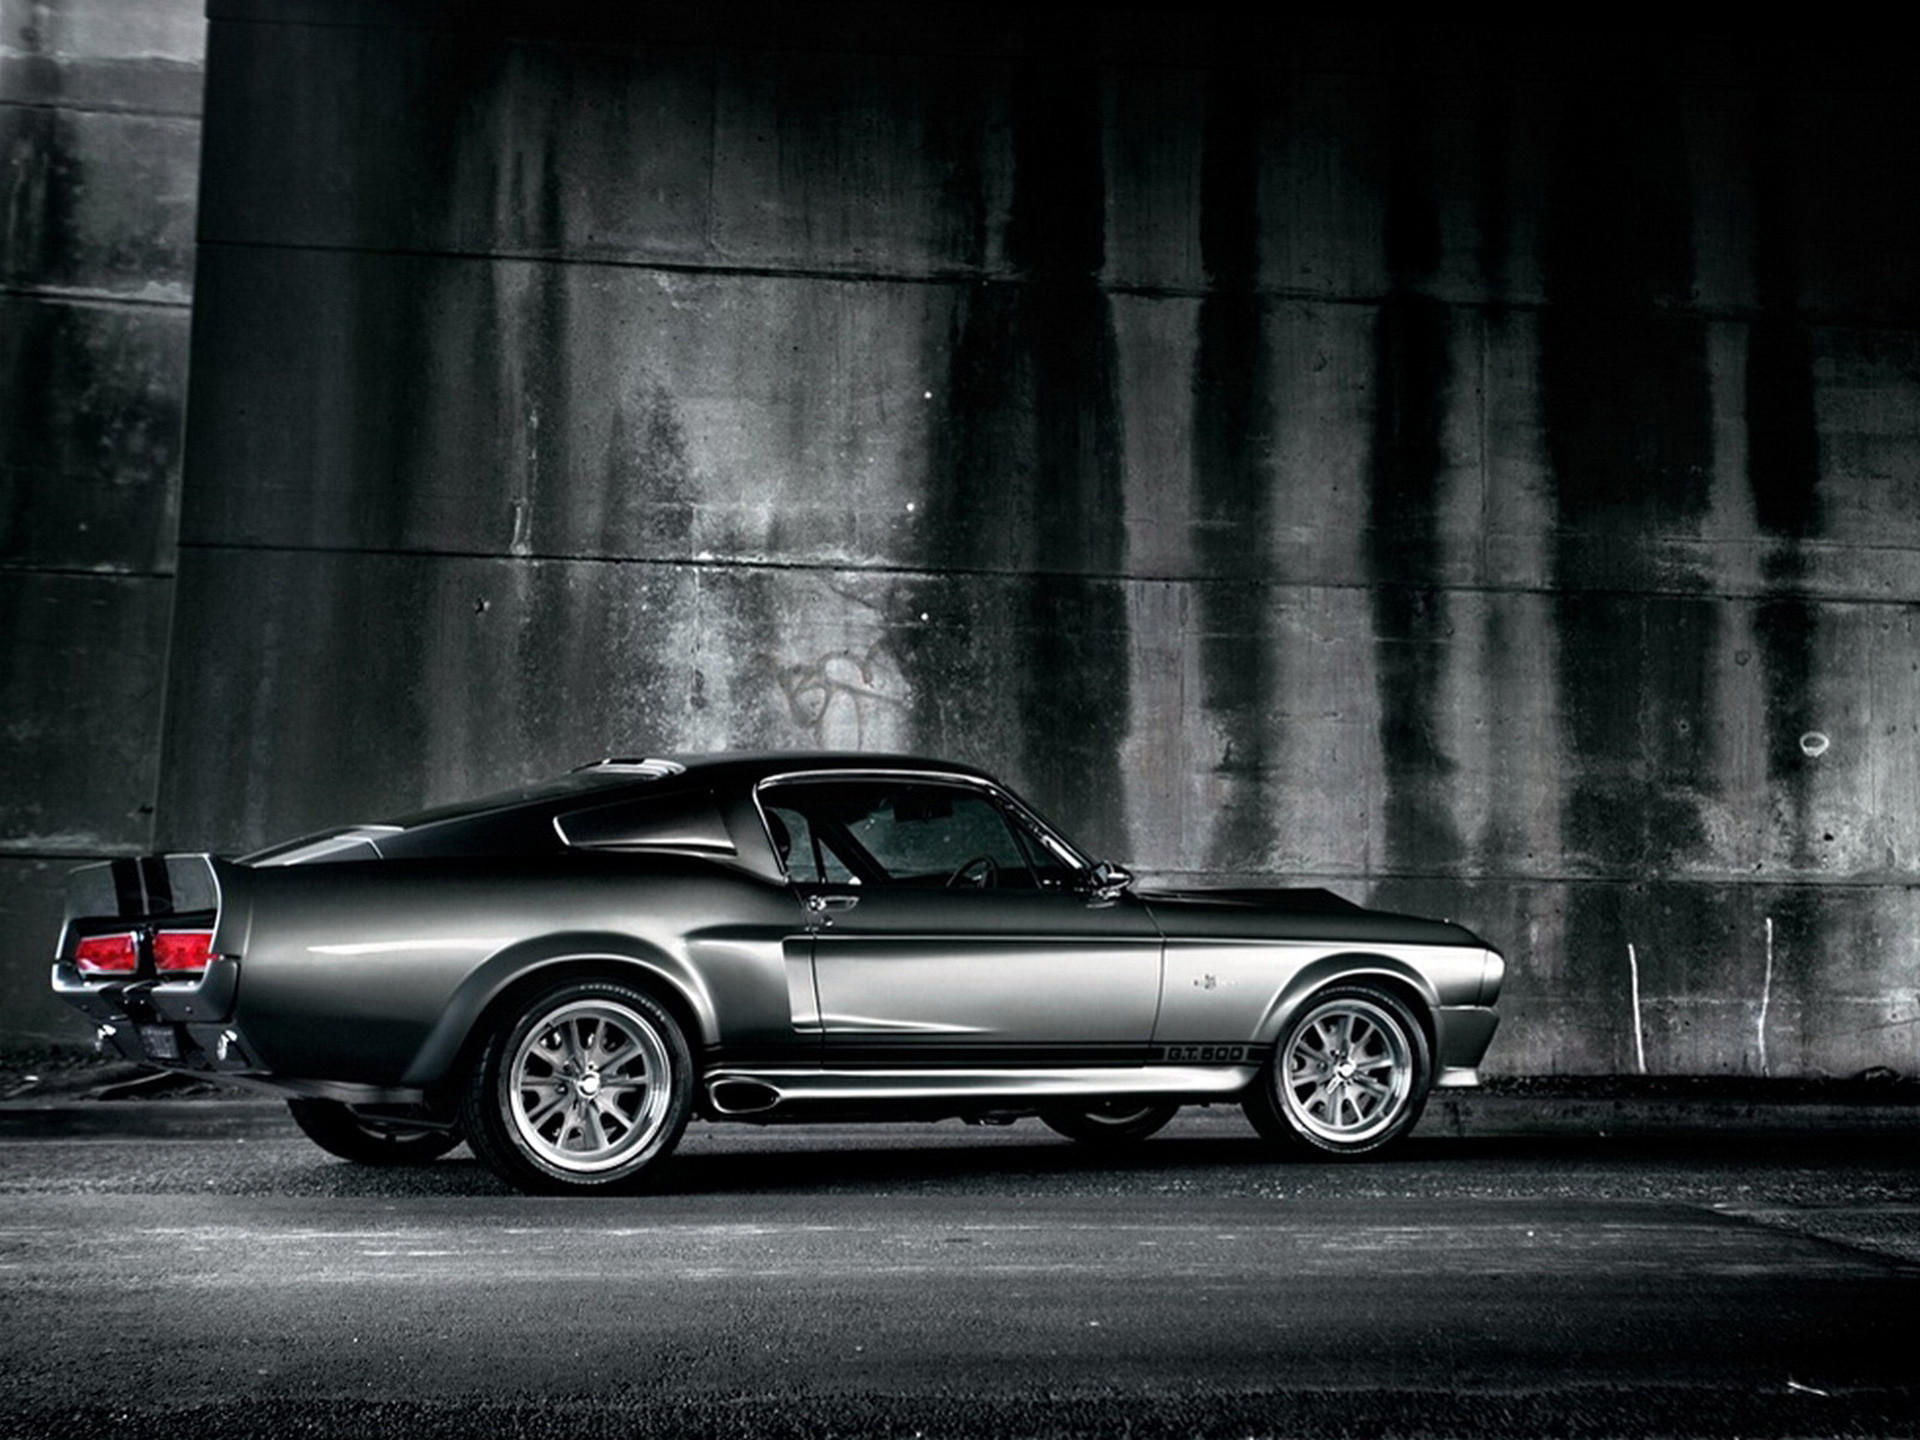 Cars Ford Mustang Shelby Gt500 Wallpaper 16894 Wallpaperup